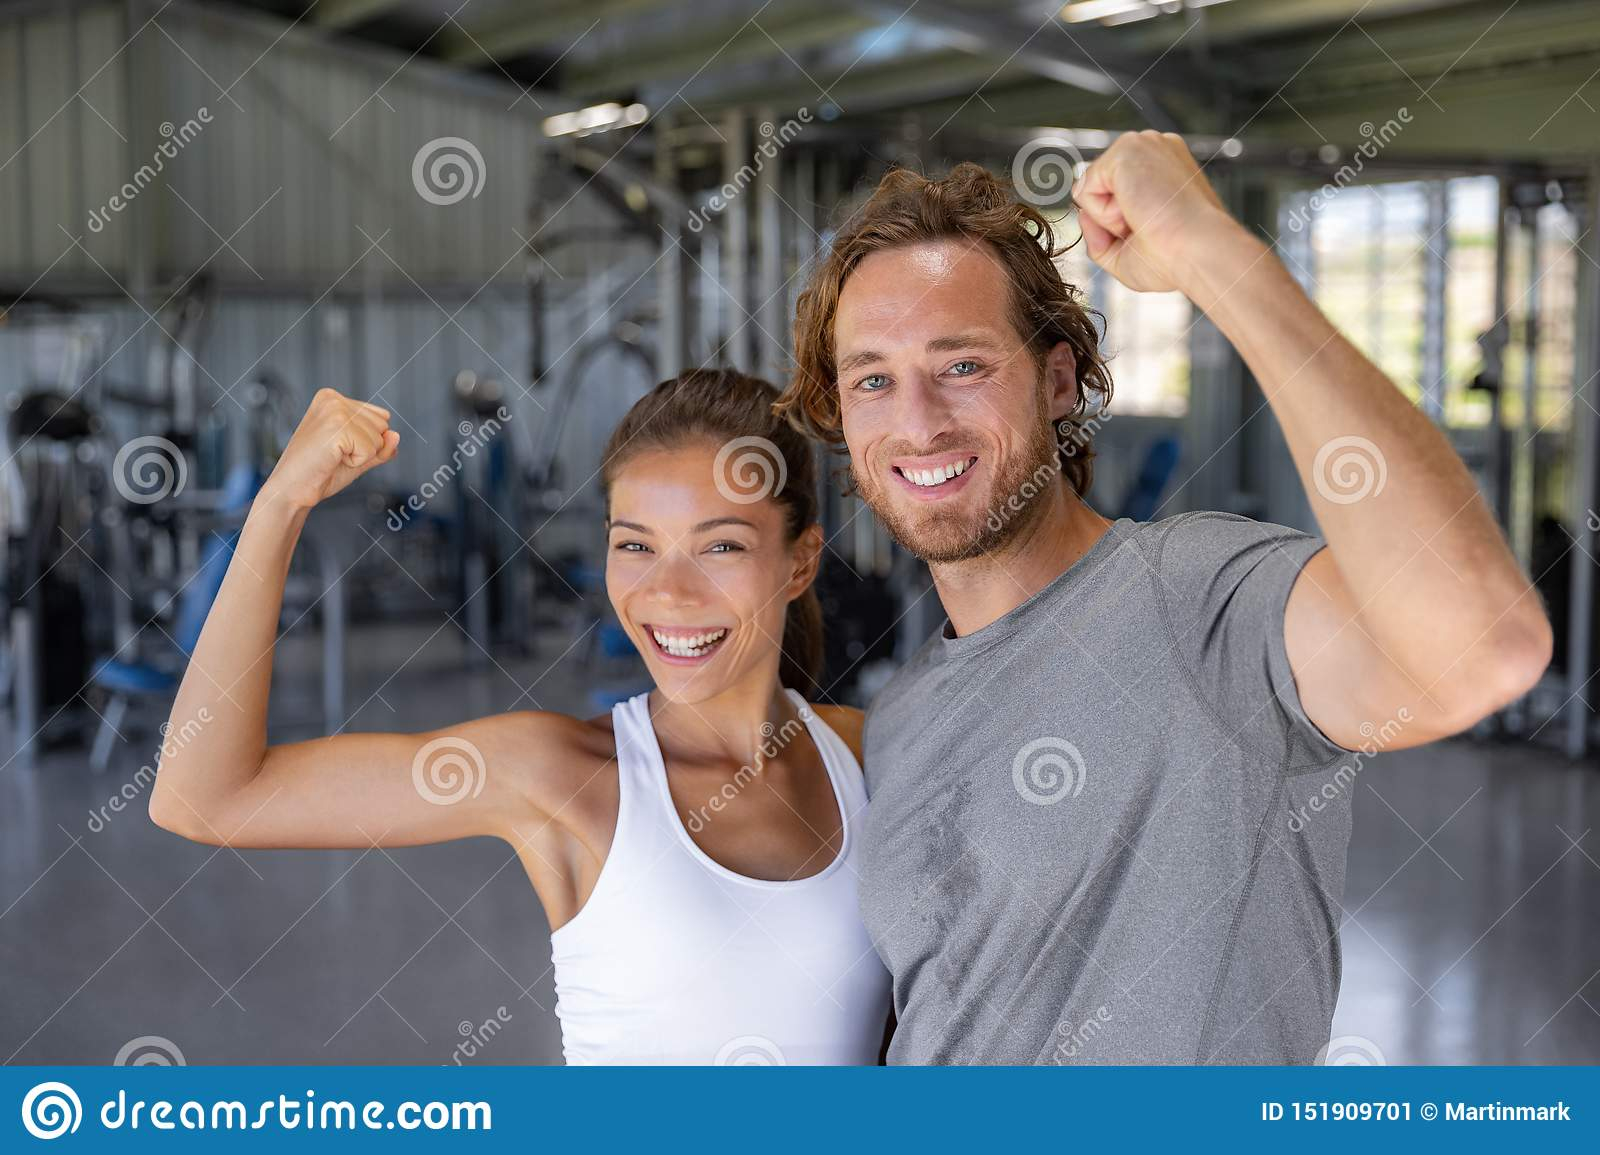 Fit power couple happy flexing strong arms showing off success training at fitness gym - Smiling Asian woman